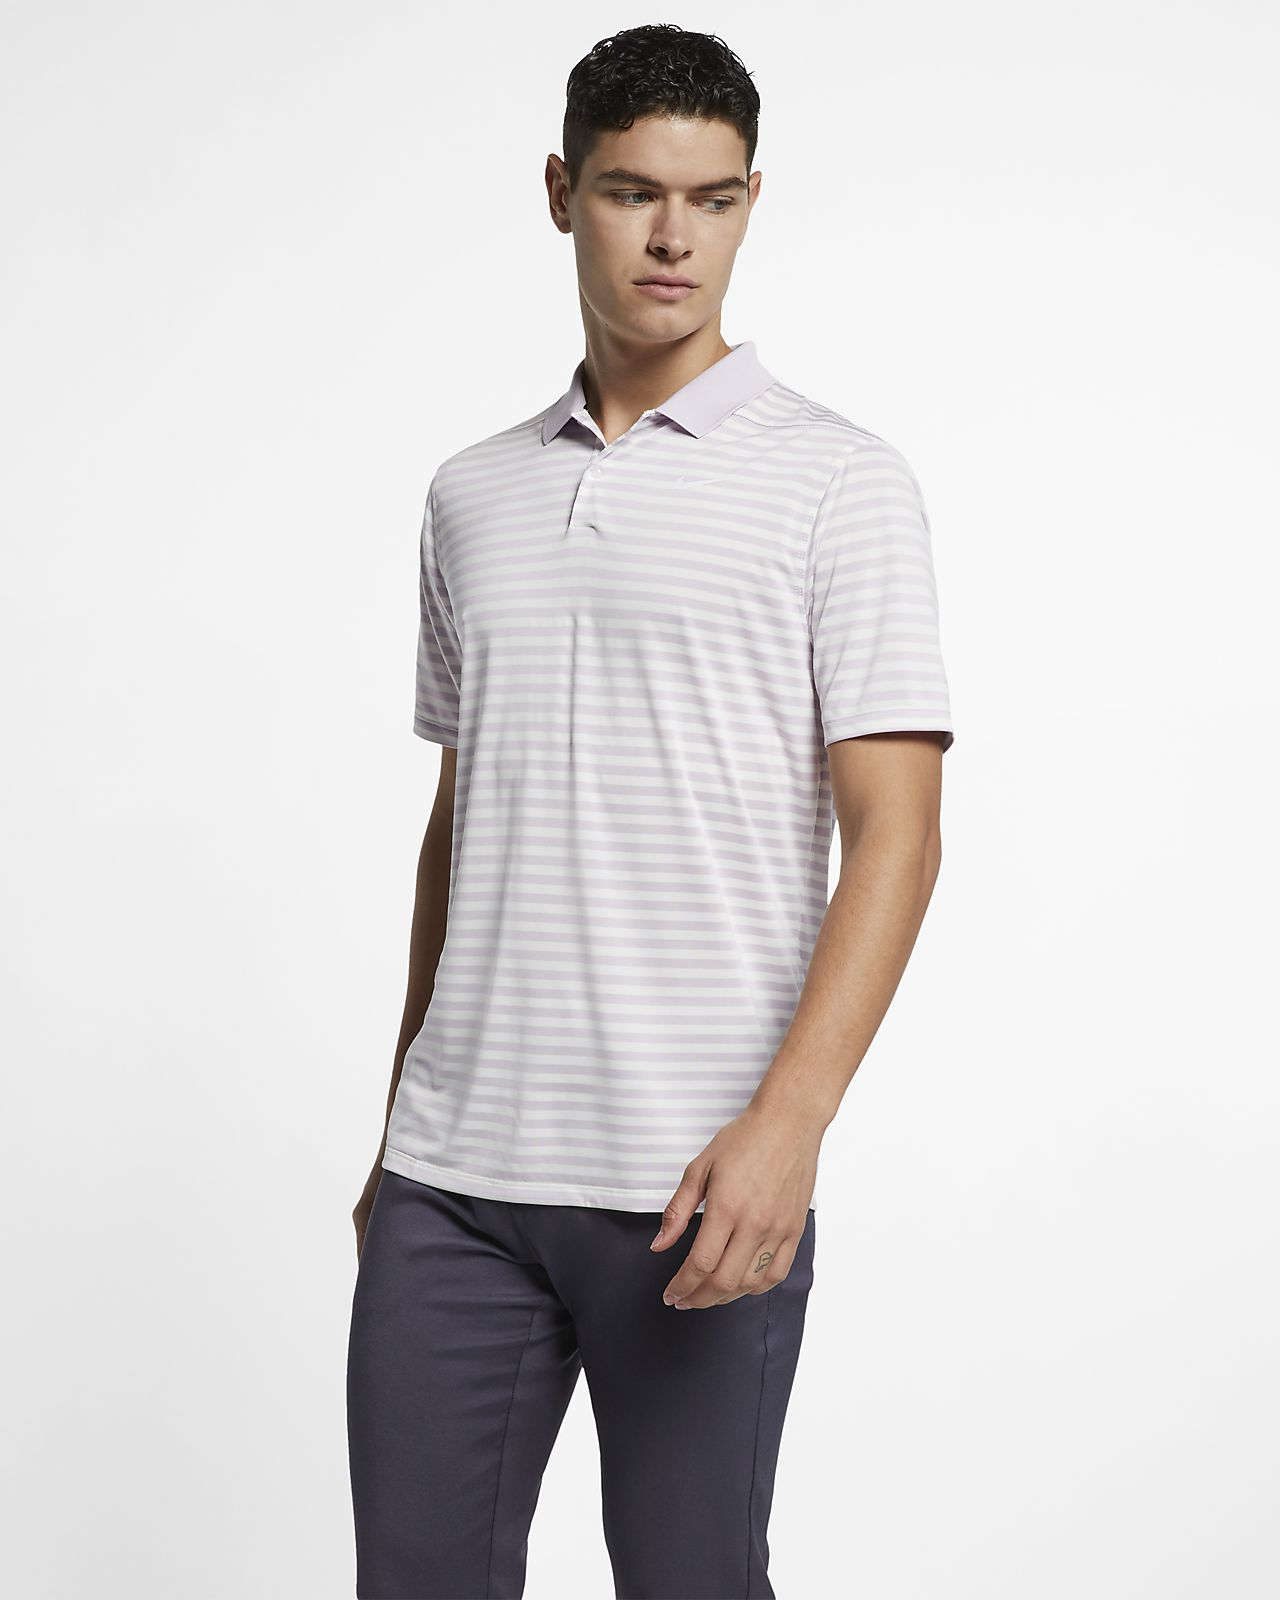 8b97c85b Nike Dri-FIT Victory Men's Striped Golf Polo. Nike.com